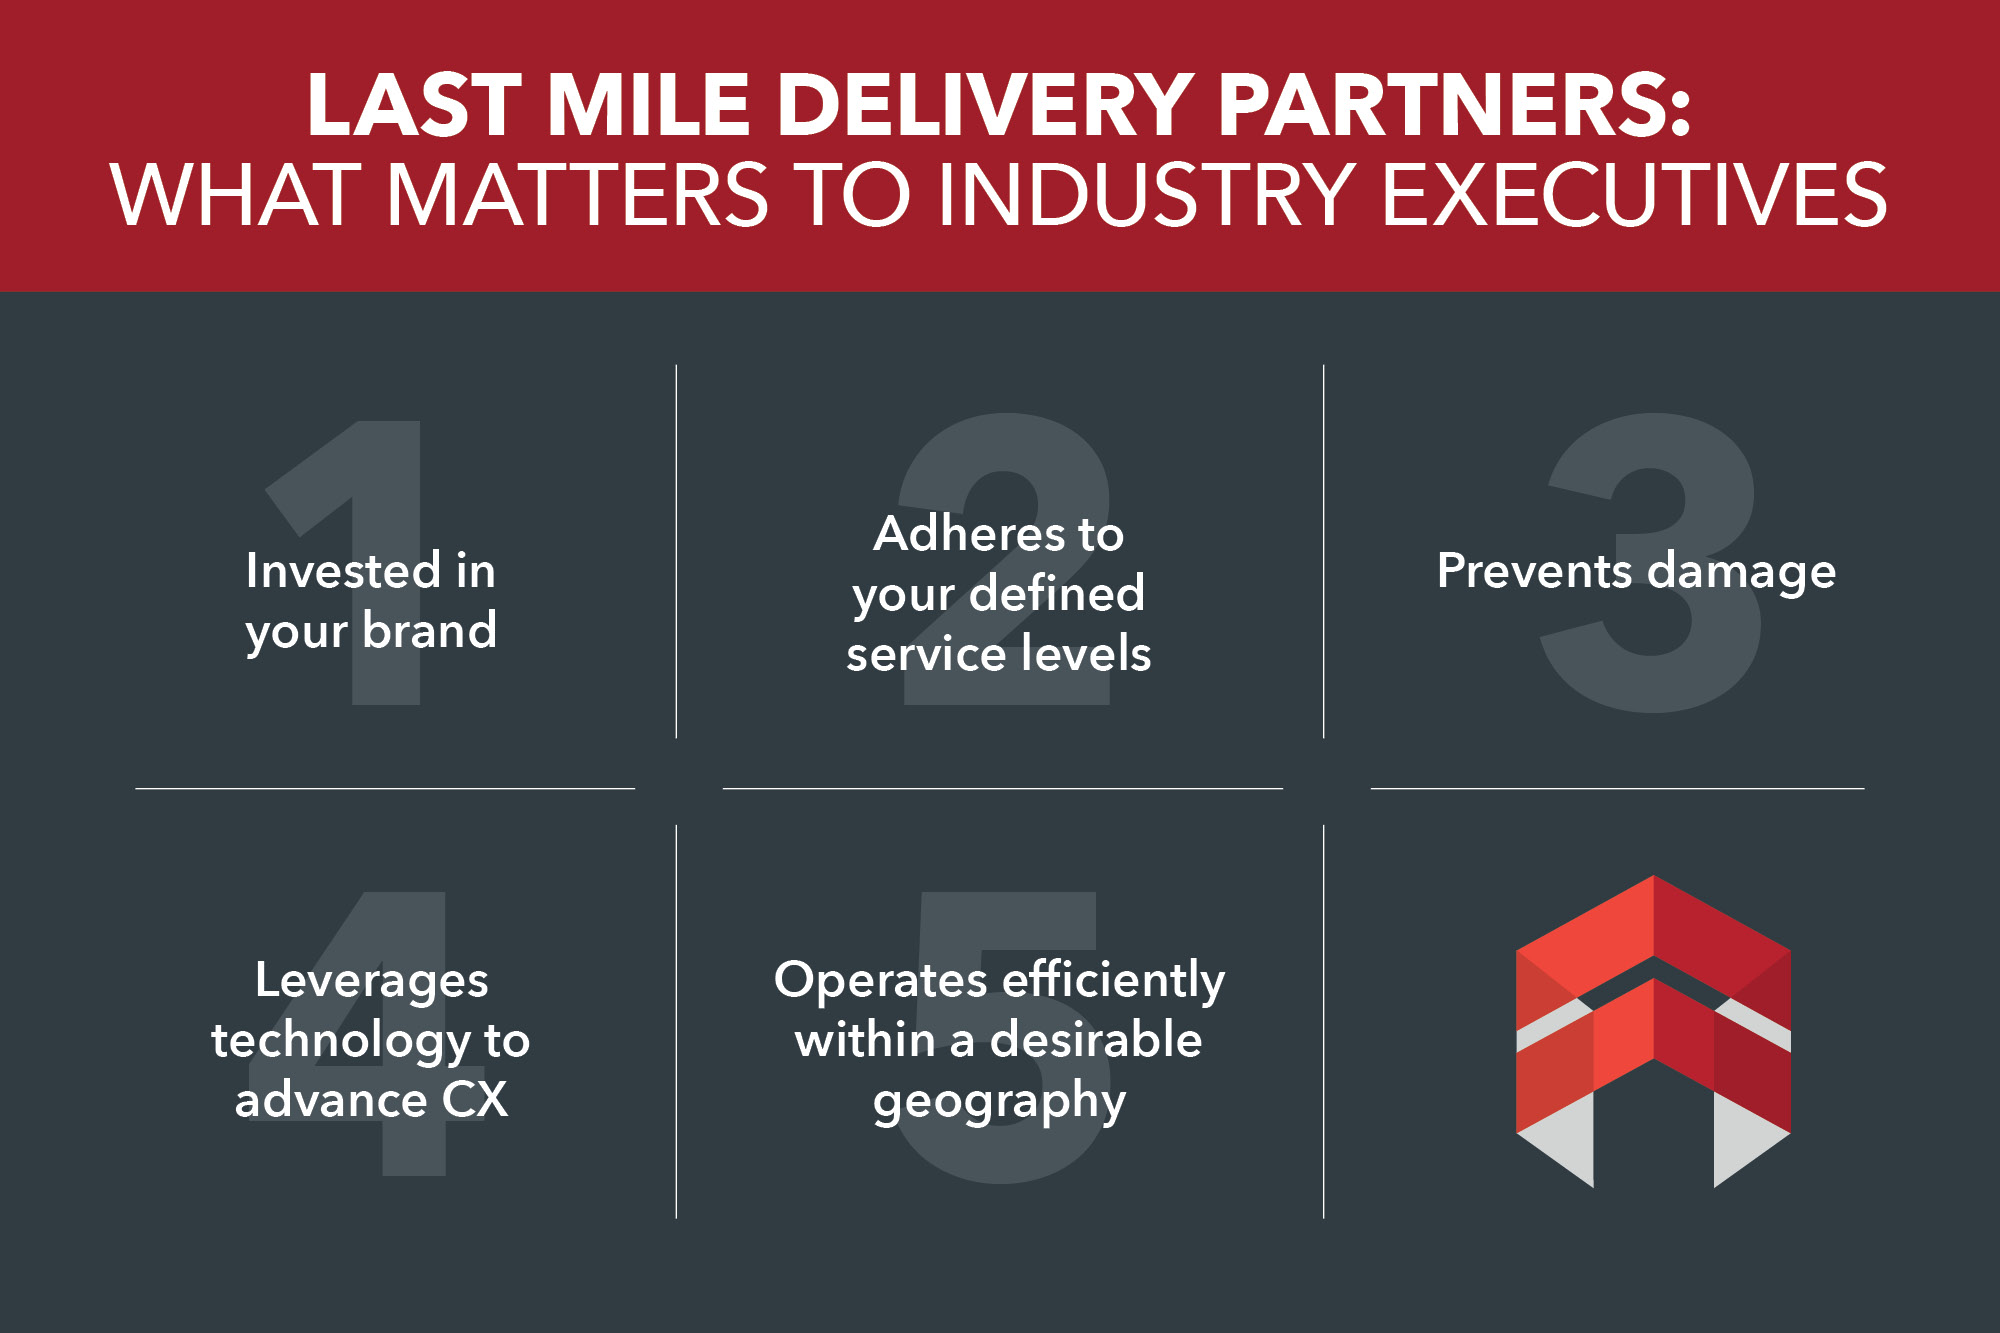 Last Mile Delivery Partners: What Matters to Executives